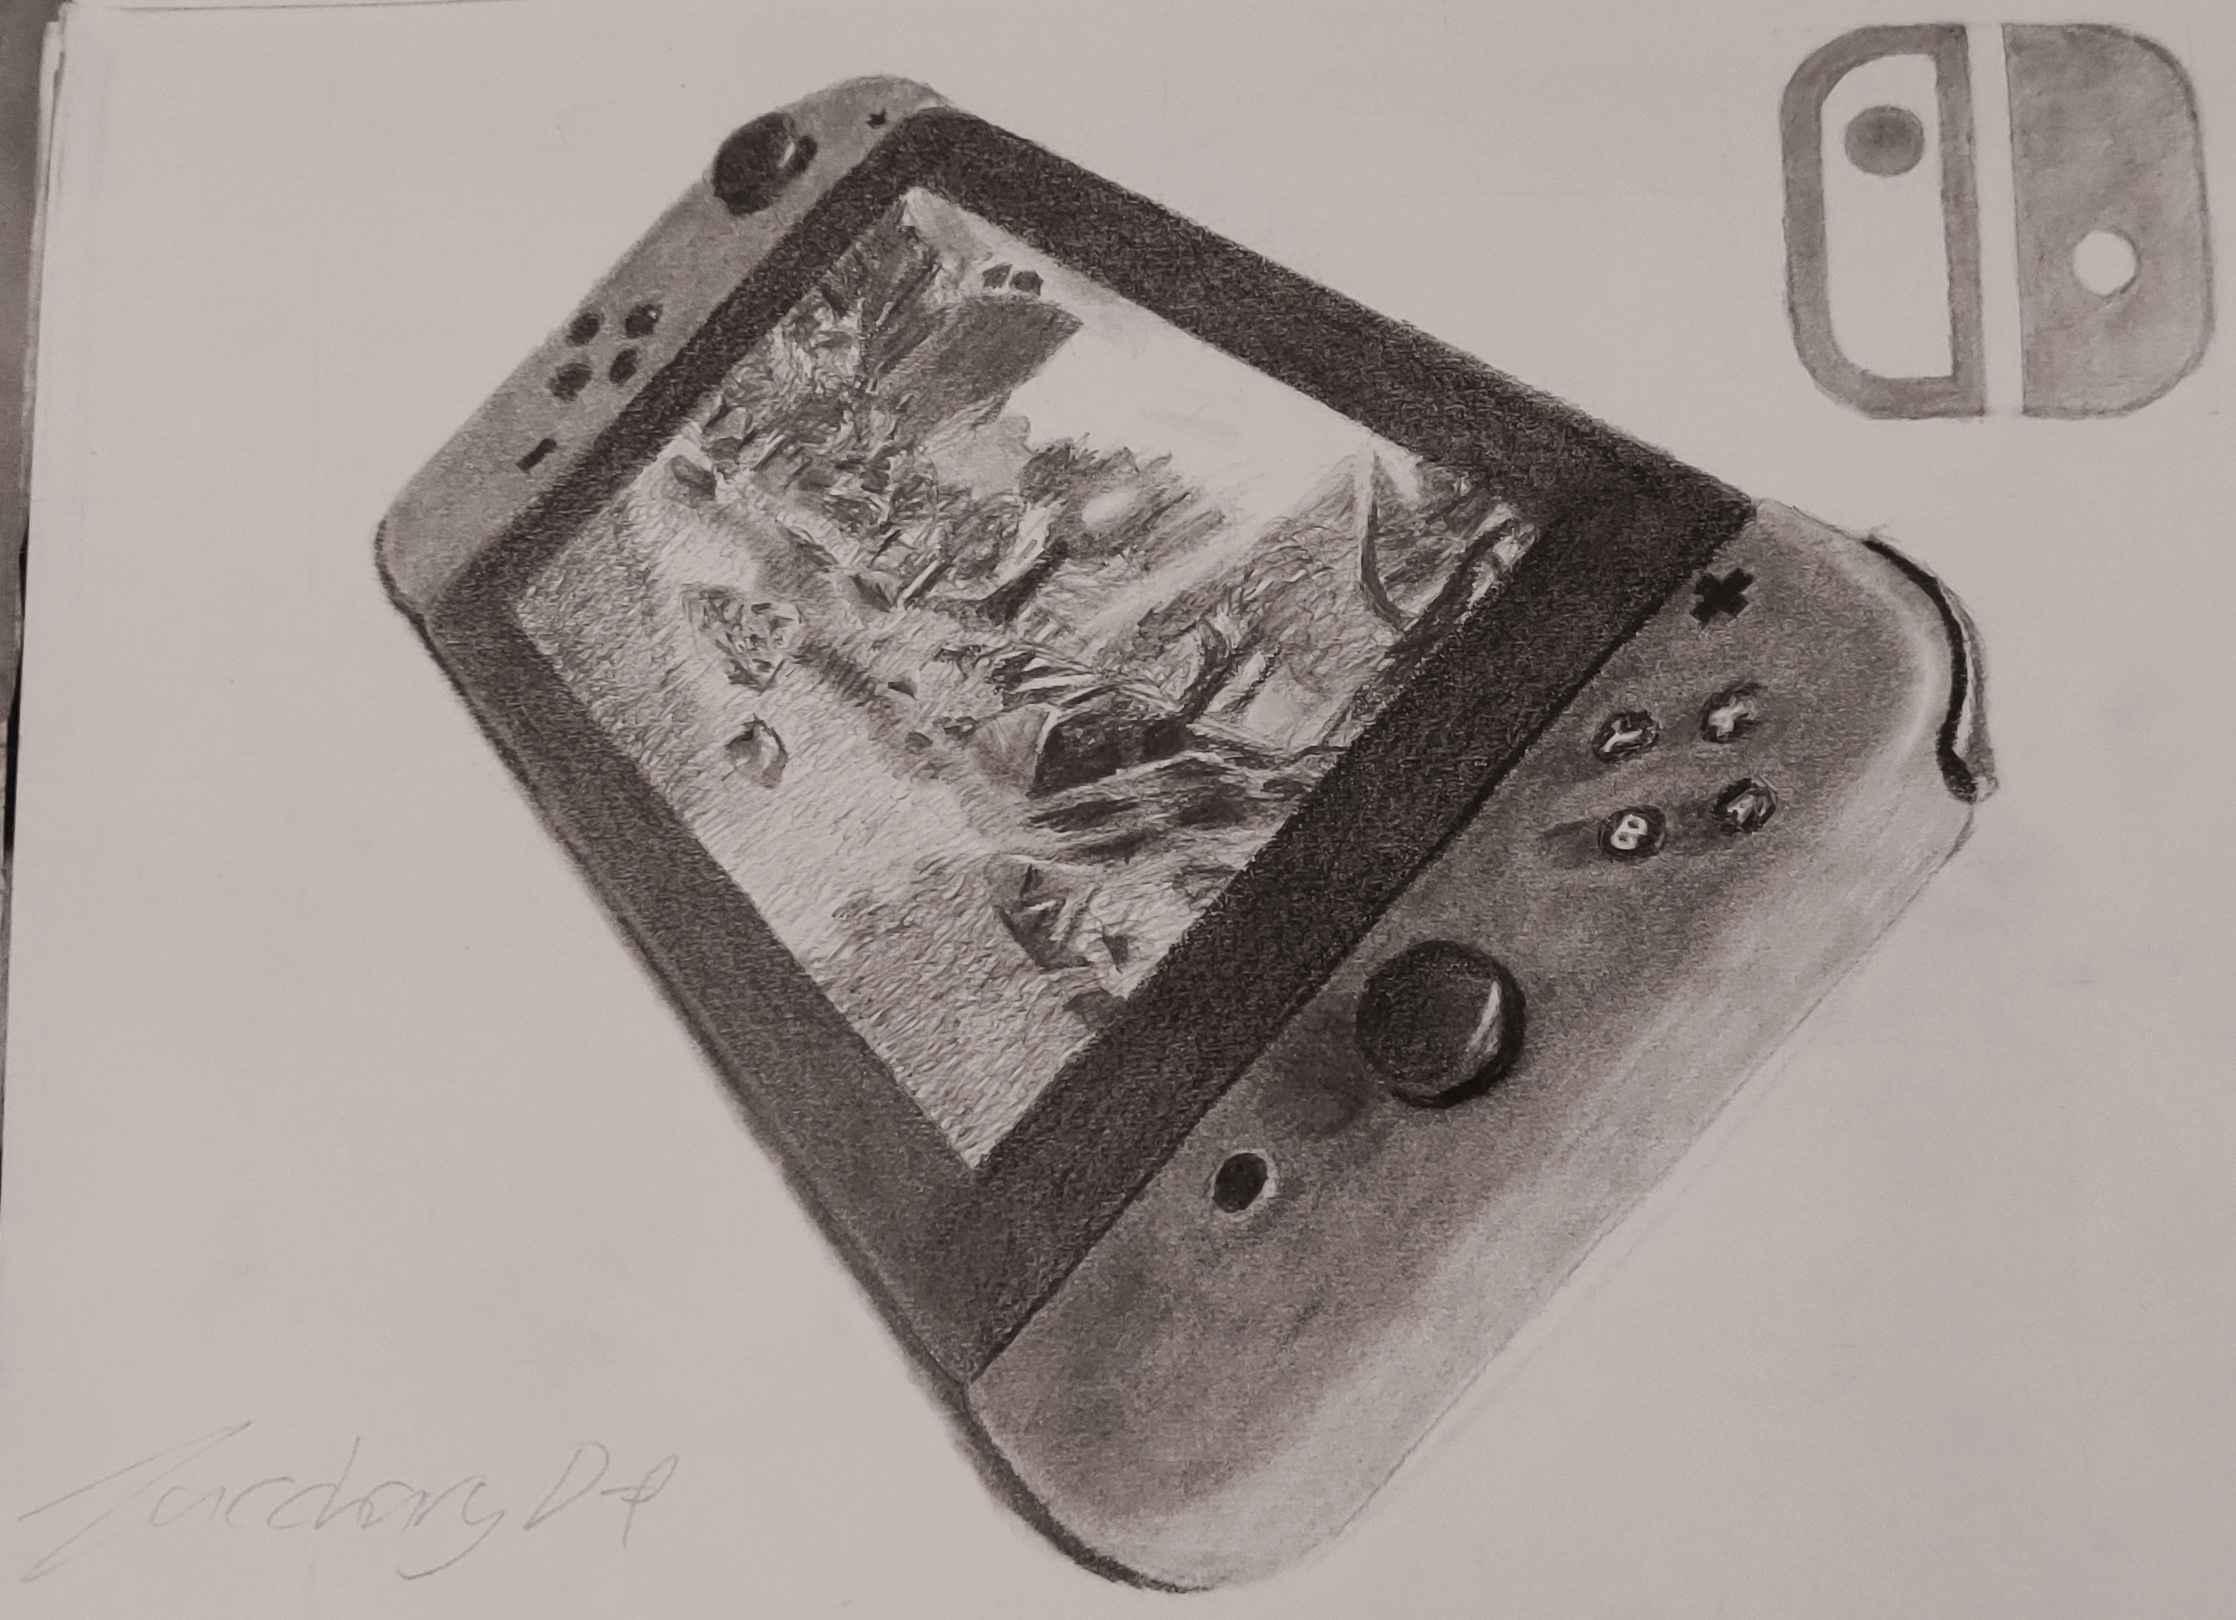 A perspective value drawing of a Nintendo Switch playing 'The Legend of Zelda: Breath of the Wild'.